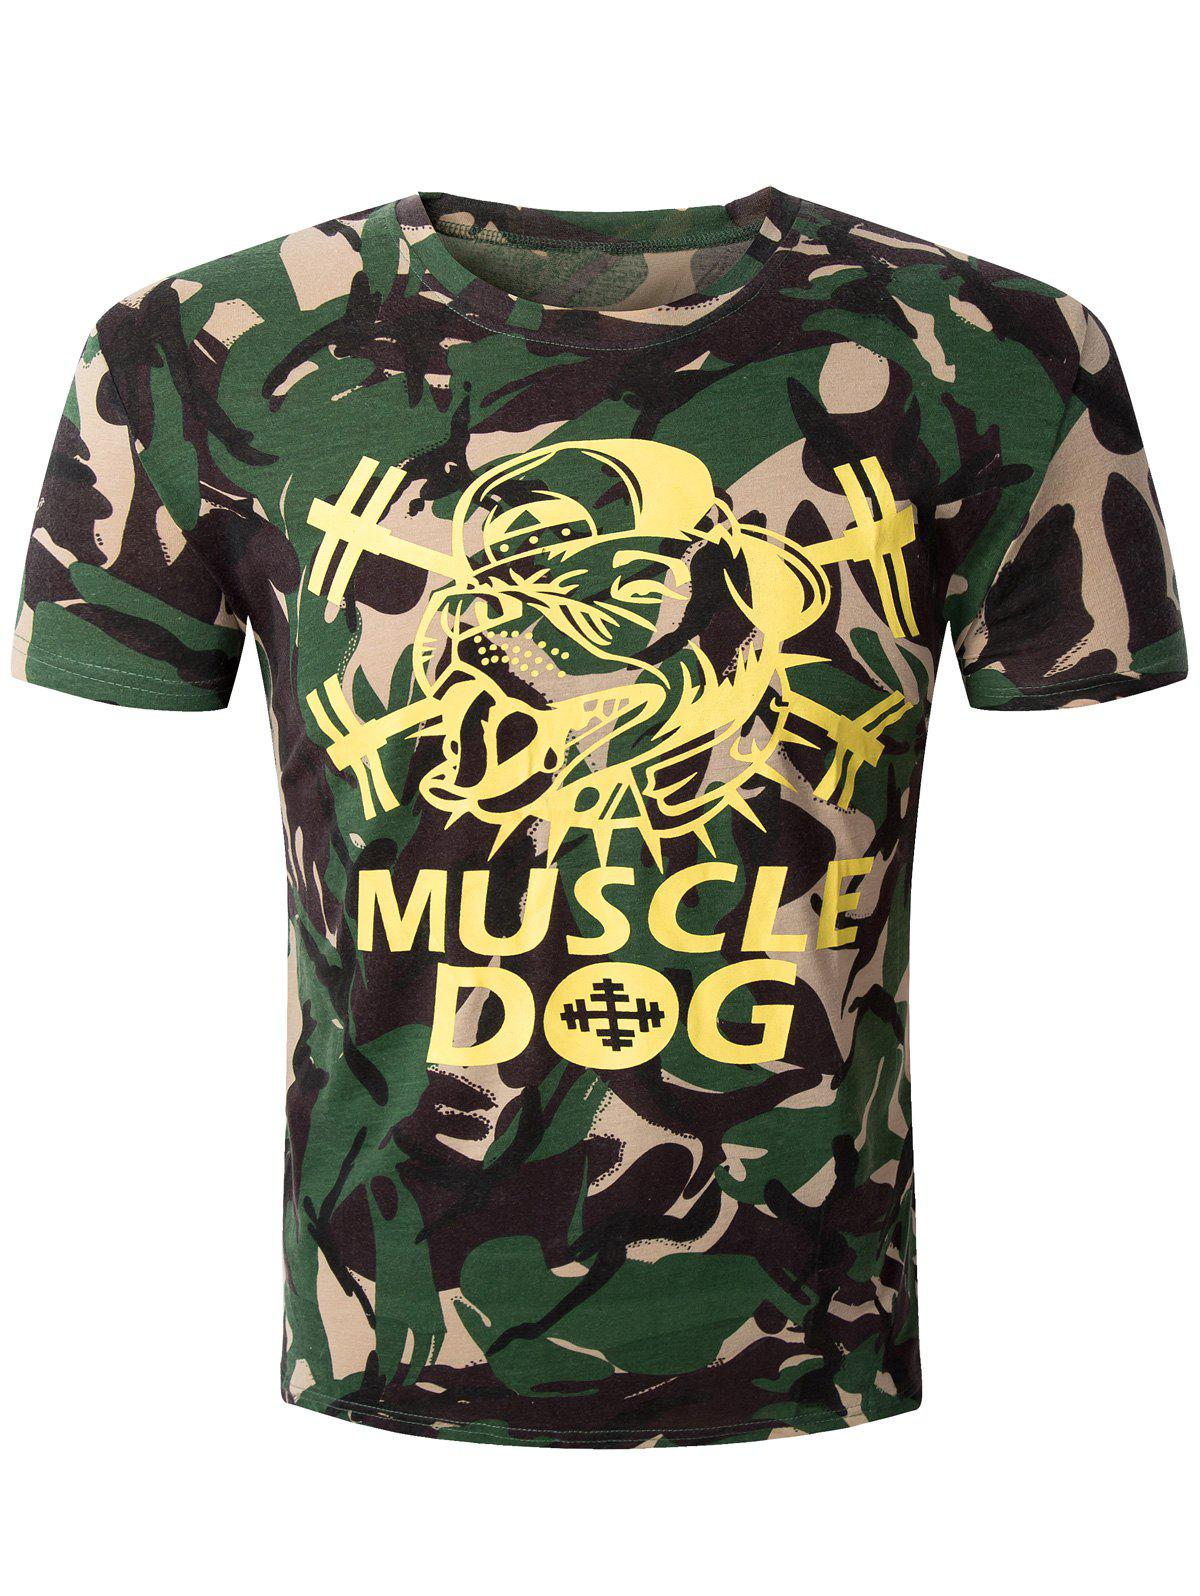 Casual Camo Printed Round Collar Men's T-Shirt - CAMOUFLAGE 2XL